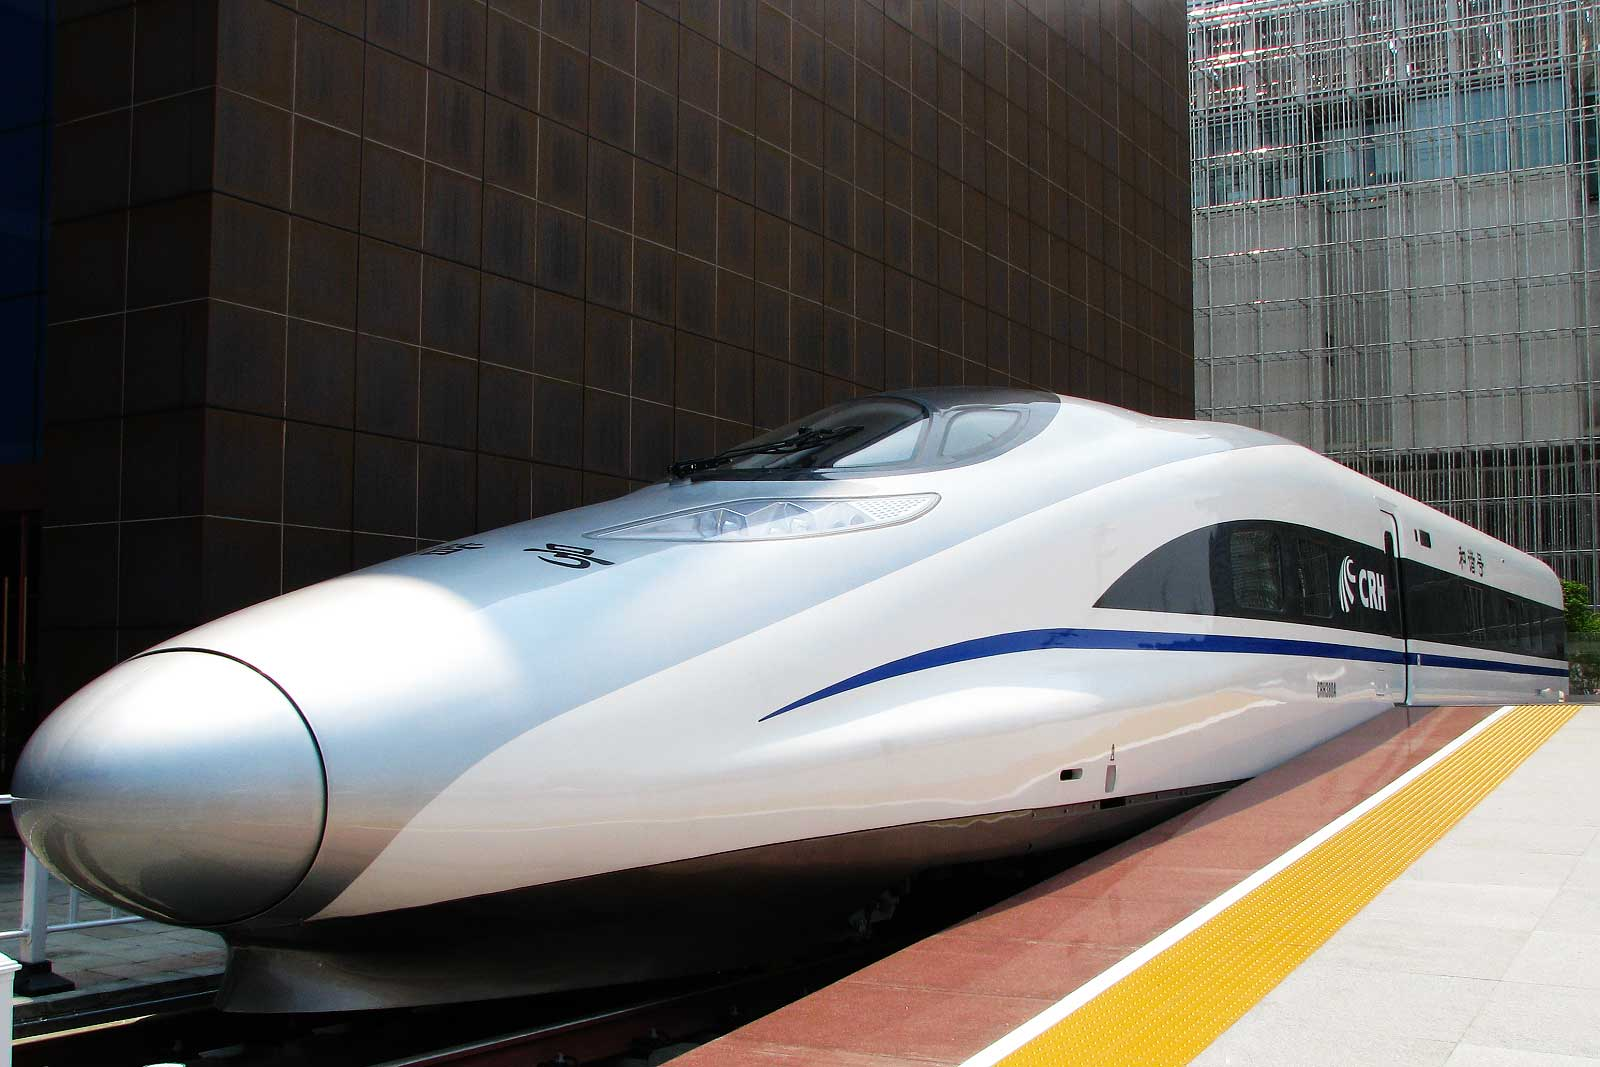 The Fastest Bullet Trains on Earth - Travel ...